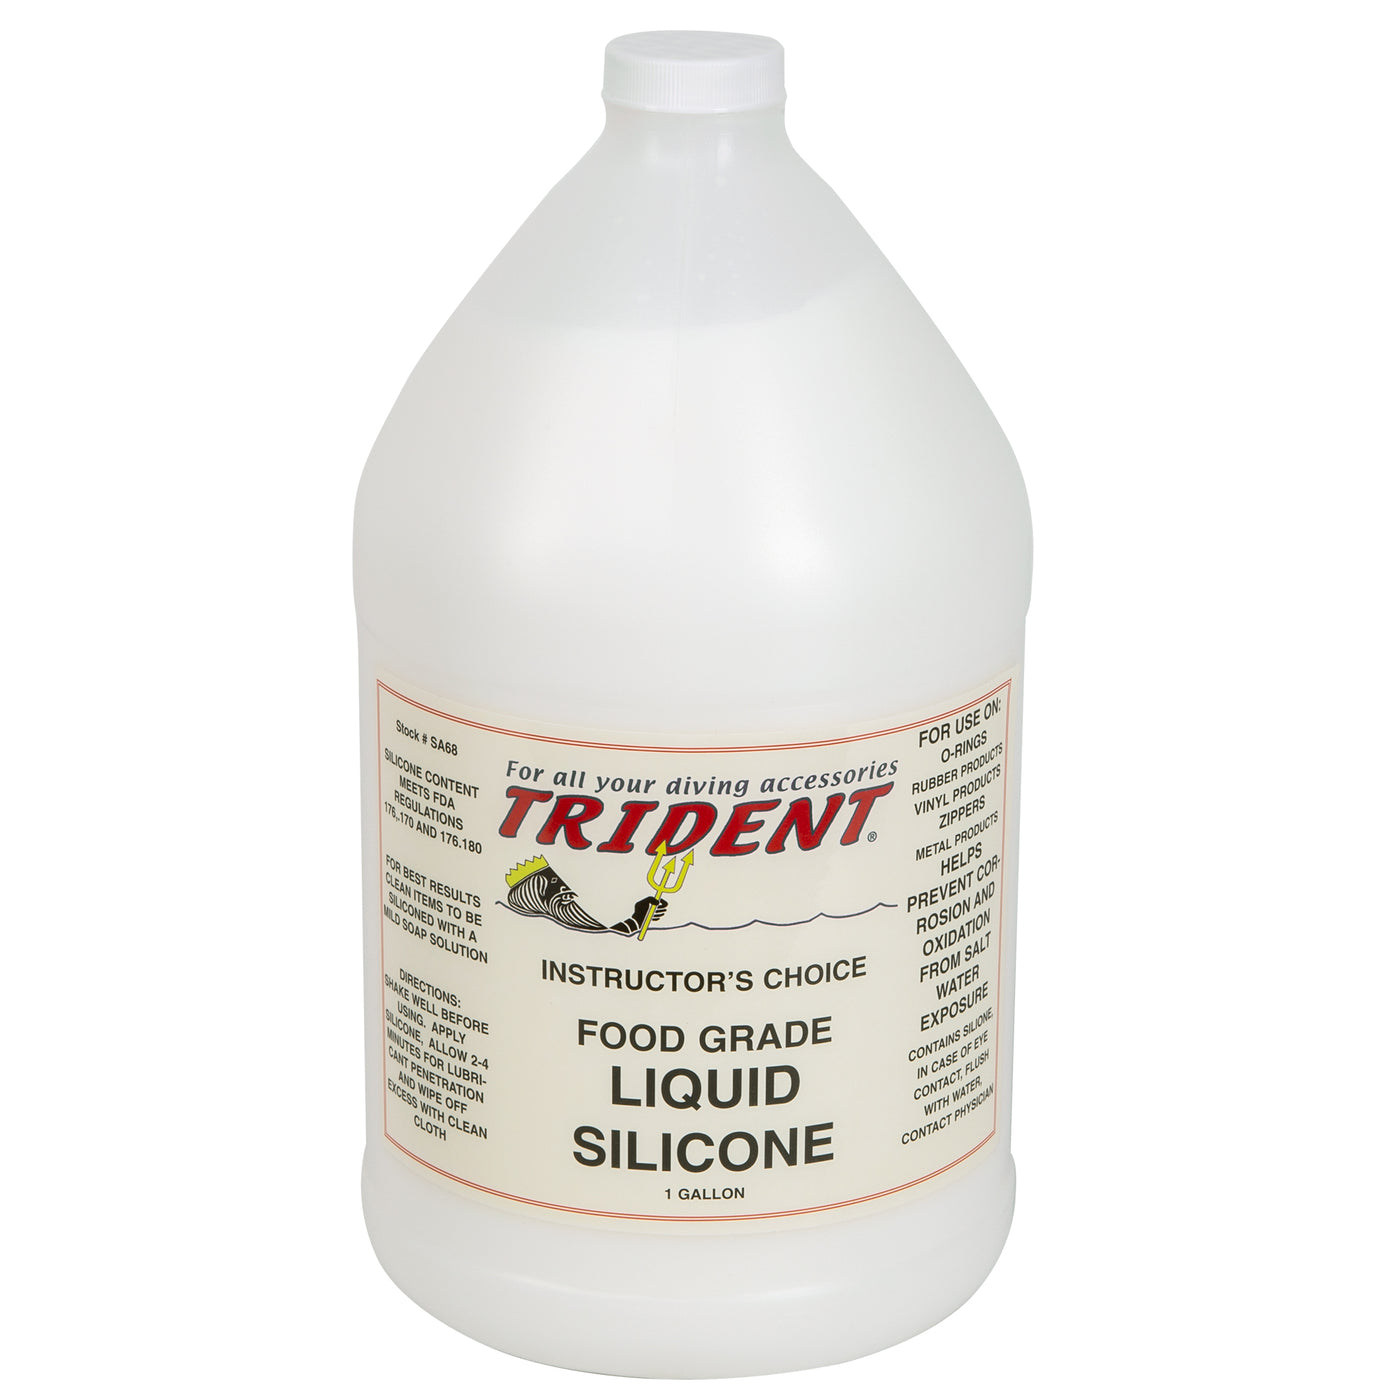 Trident Food Grade Liquid Silicone Lubricant And Conditioner 1